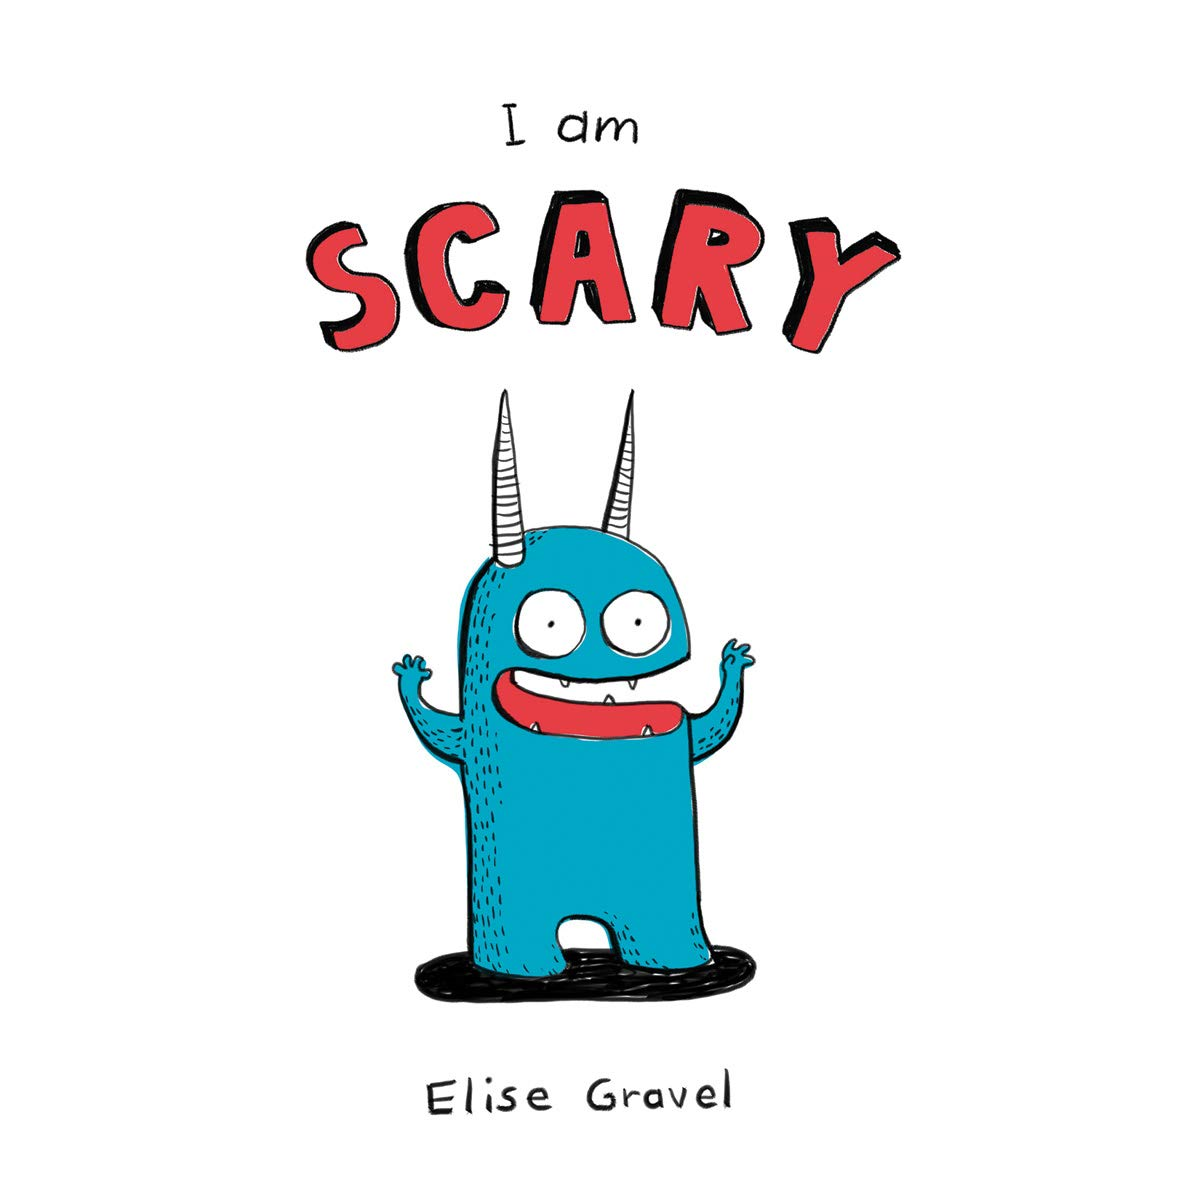 Best Childrens Books 2020.Review I Am Scary By Elise Gravel 2020 Readers By Night